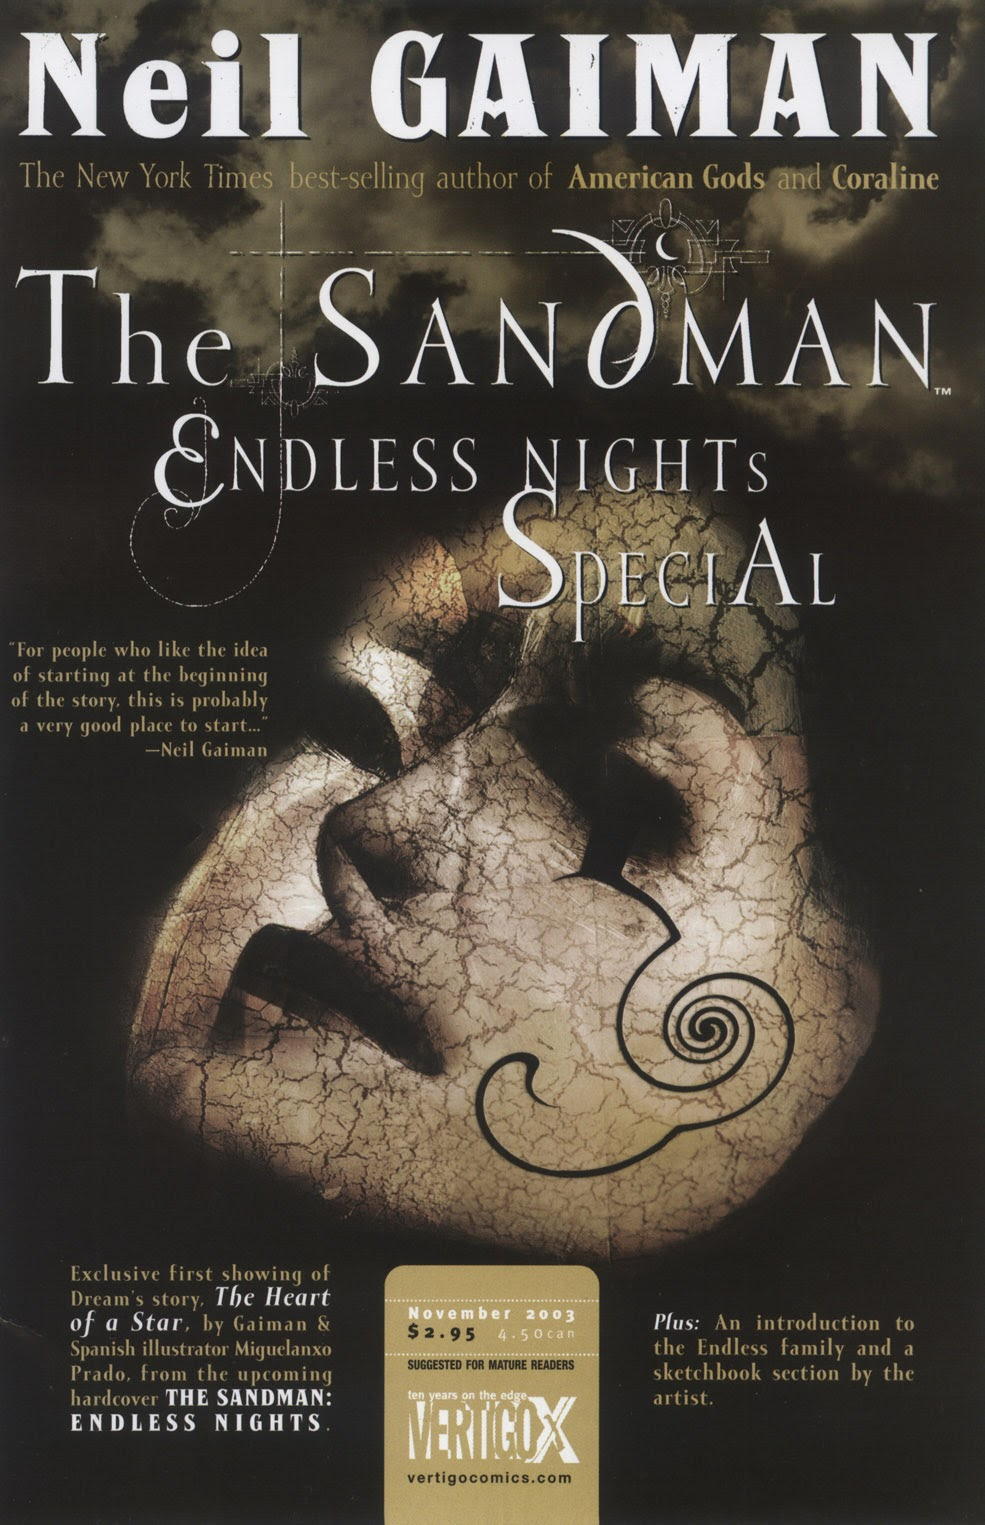 Read online The Sandman: Endless Nights comic -  Issue # _Special - 1